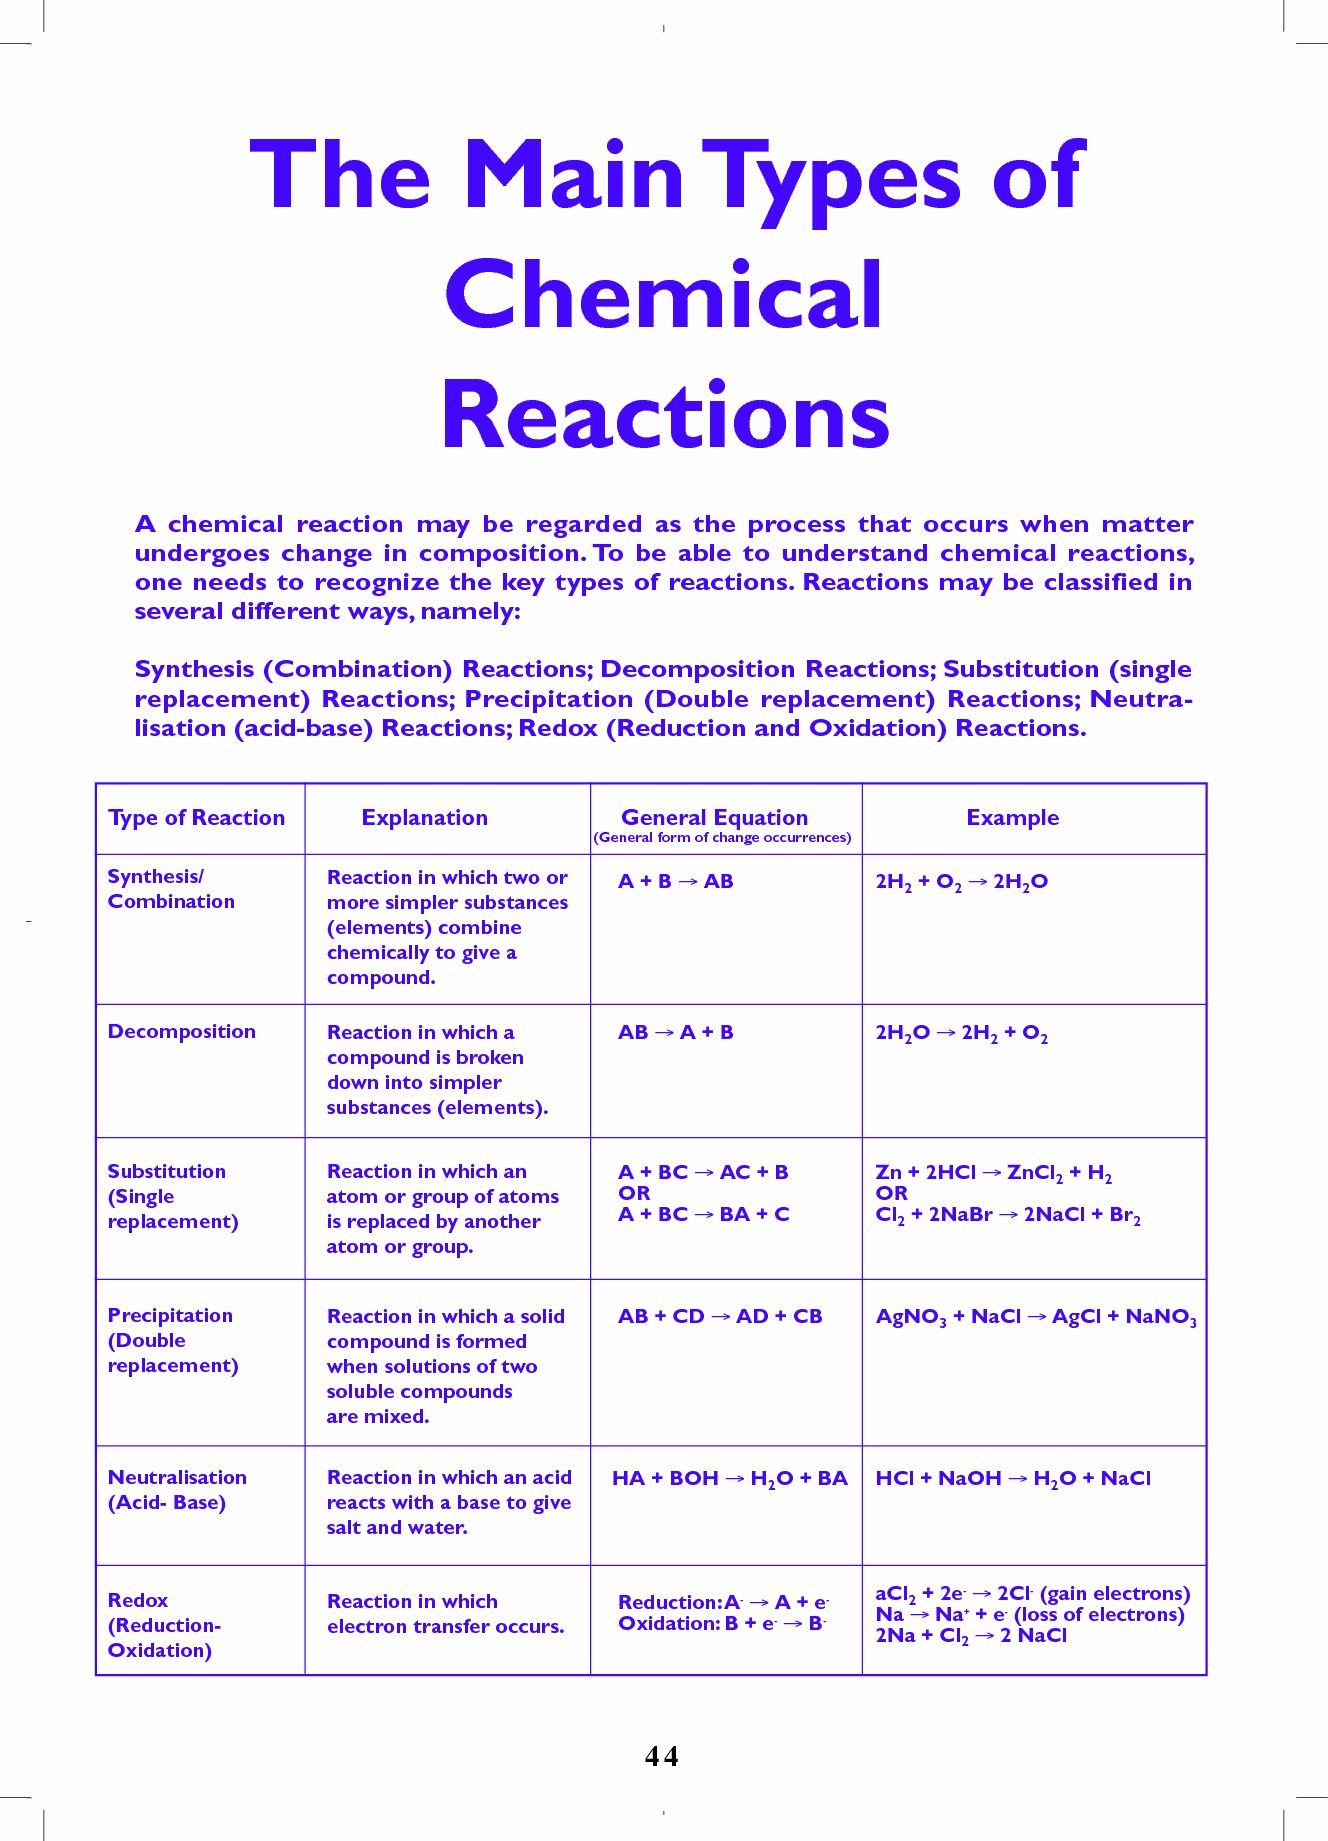 Describing Chemical Reactions Worksheet Answers